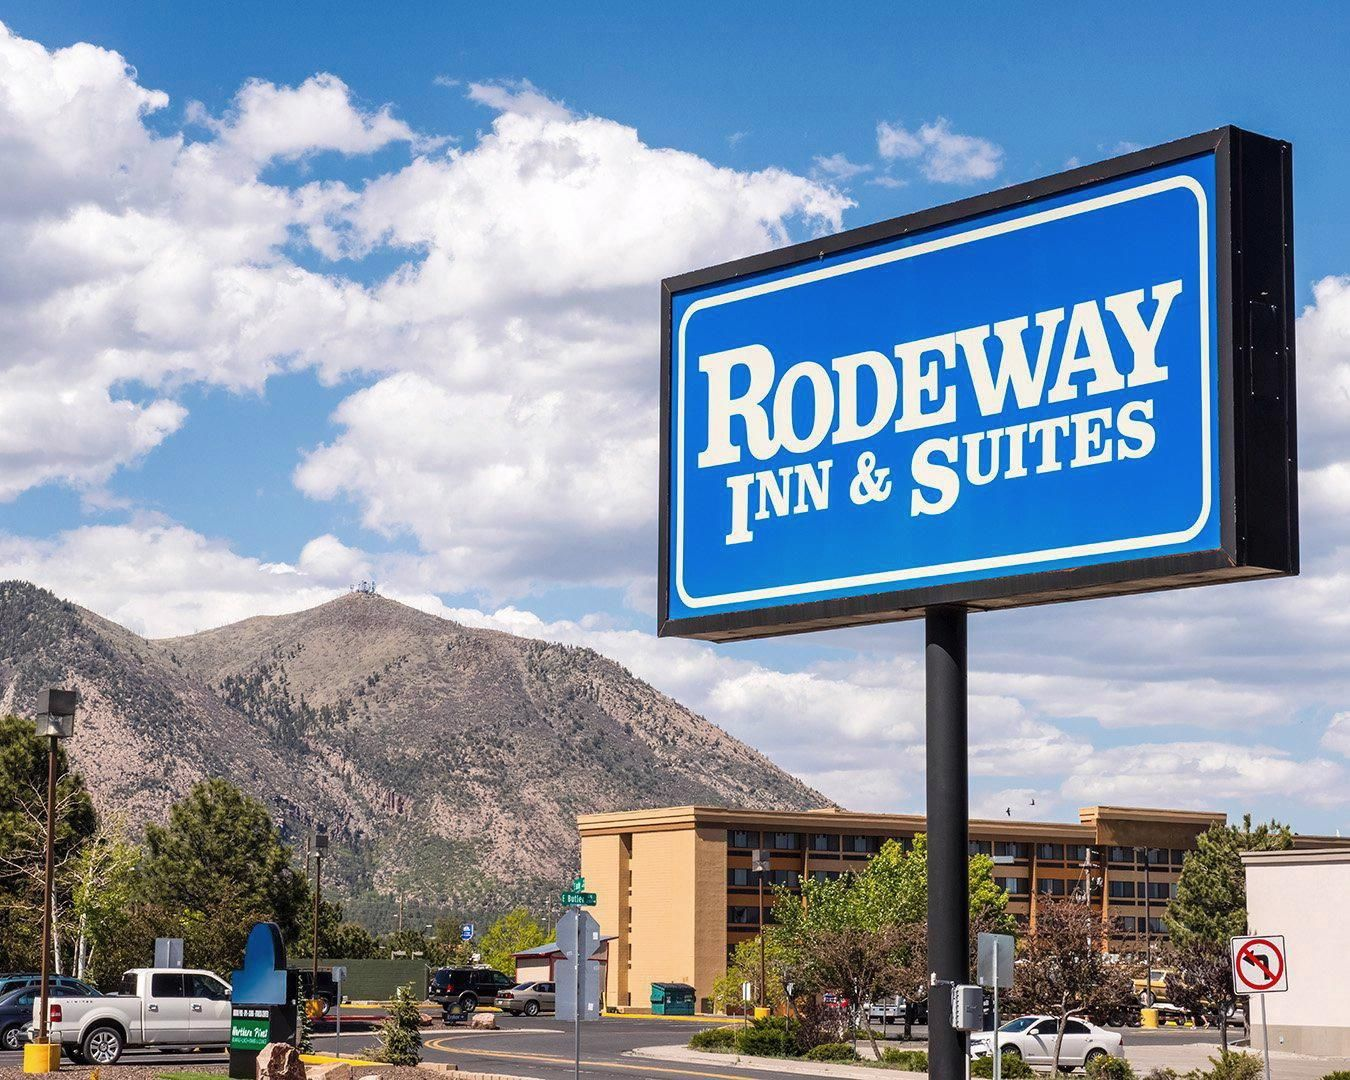 Flagstaff Az Rodeway Inn And Suites United States North America